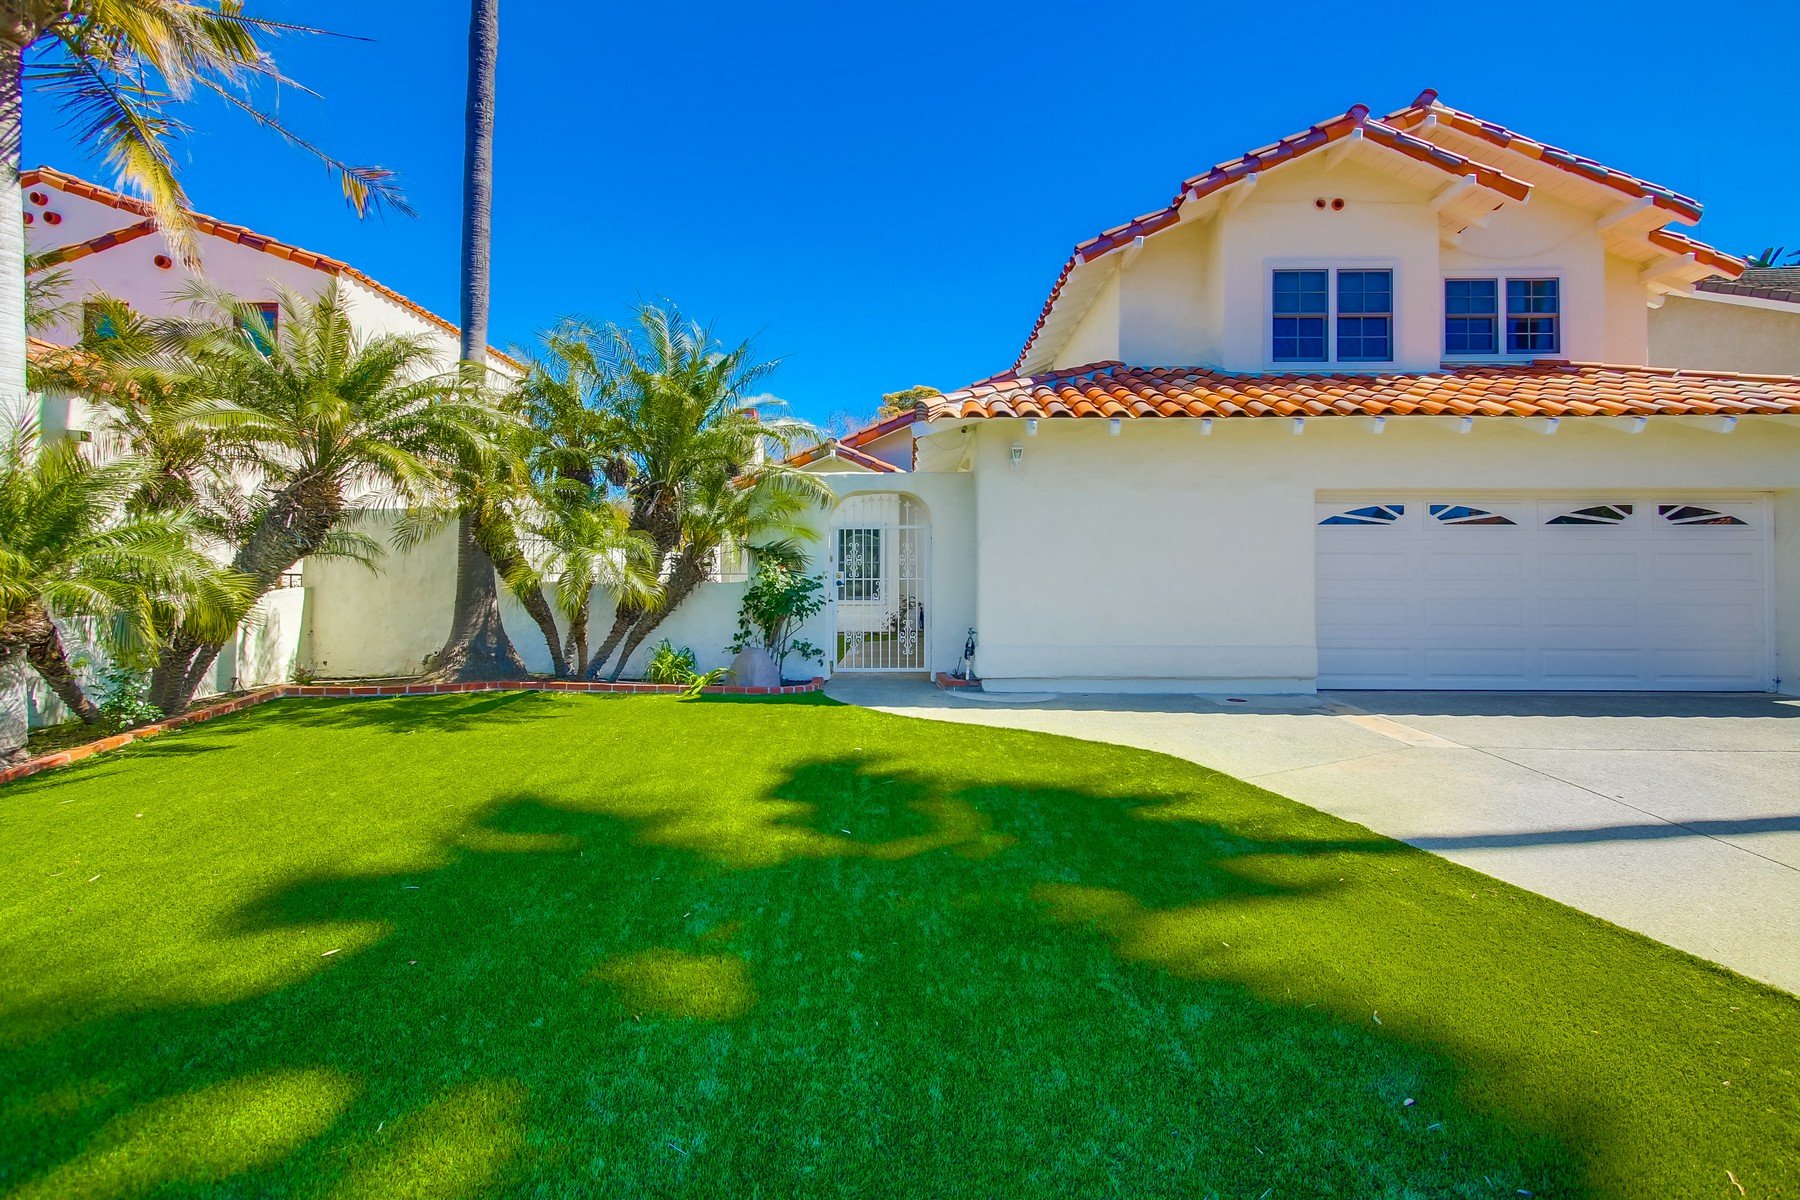 Single Family Home for Sale at 921 Windflower 921 Windflower Way San Diego, California, 92106 United States